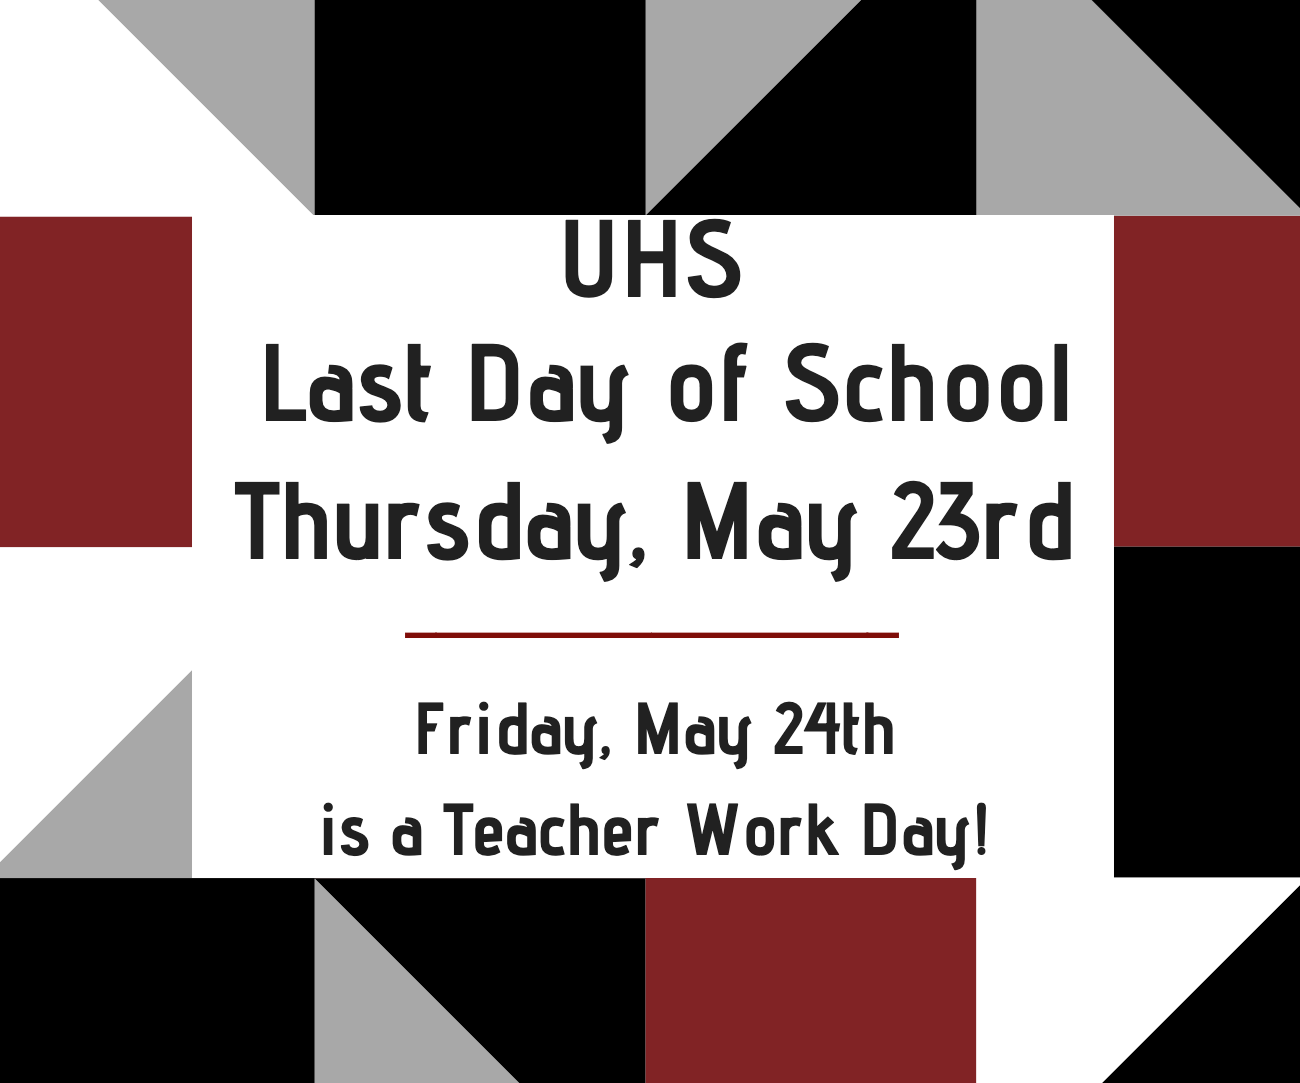 uhs last day of school may 23rd